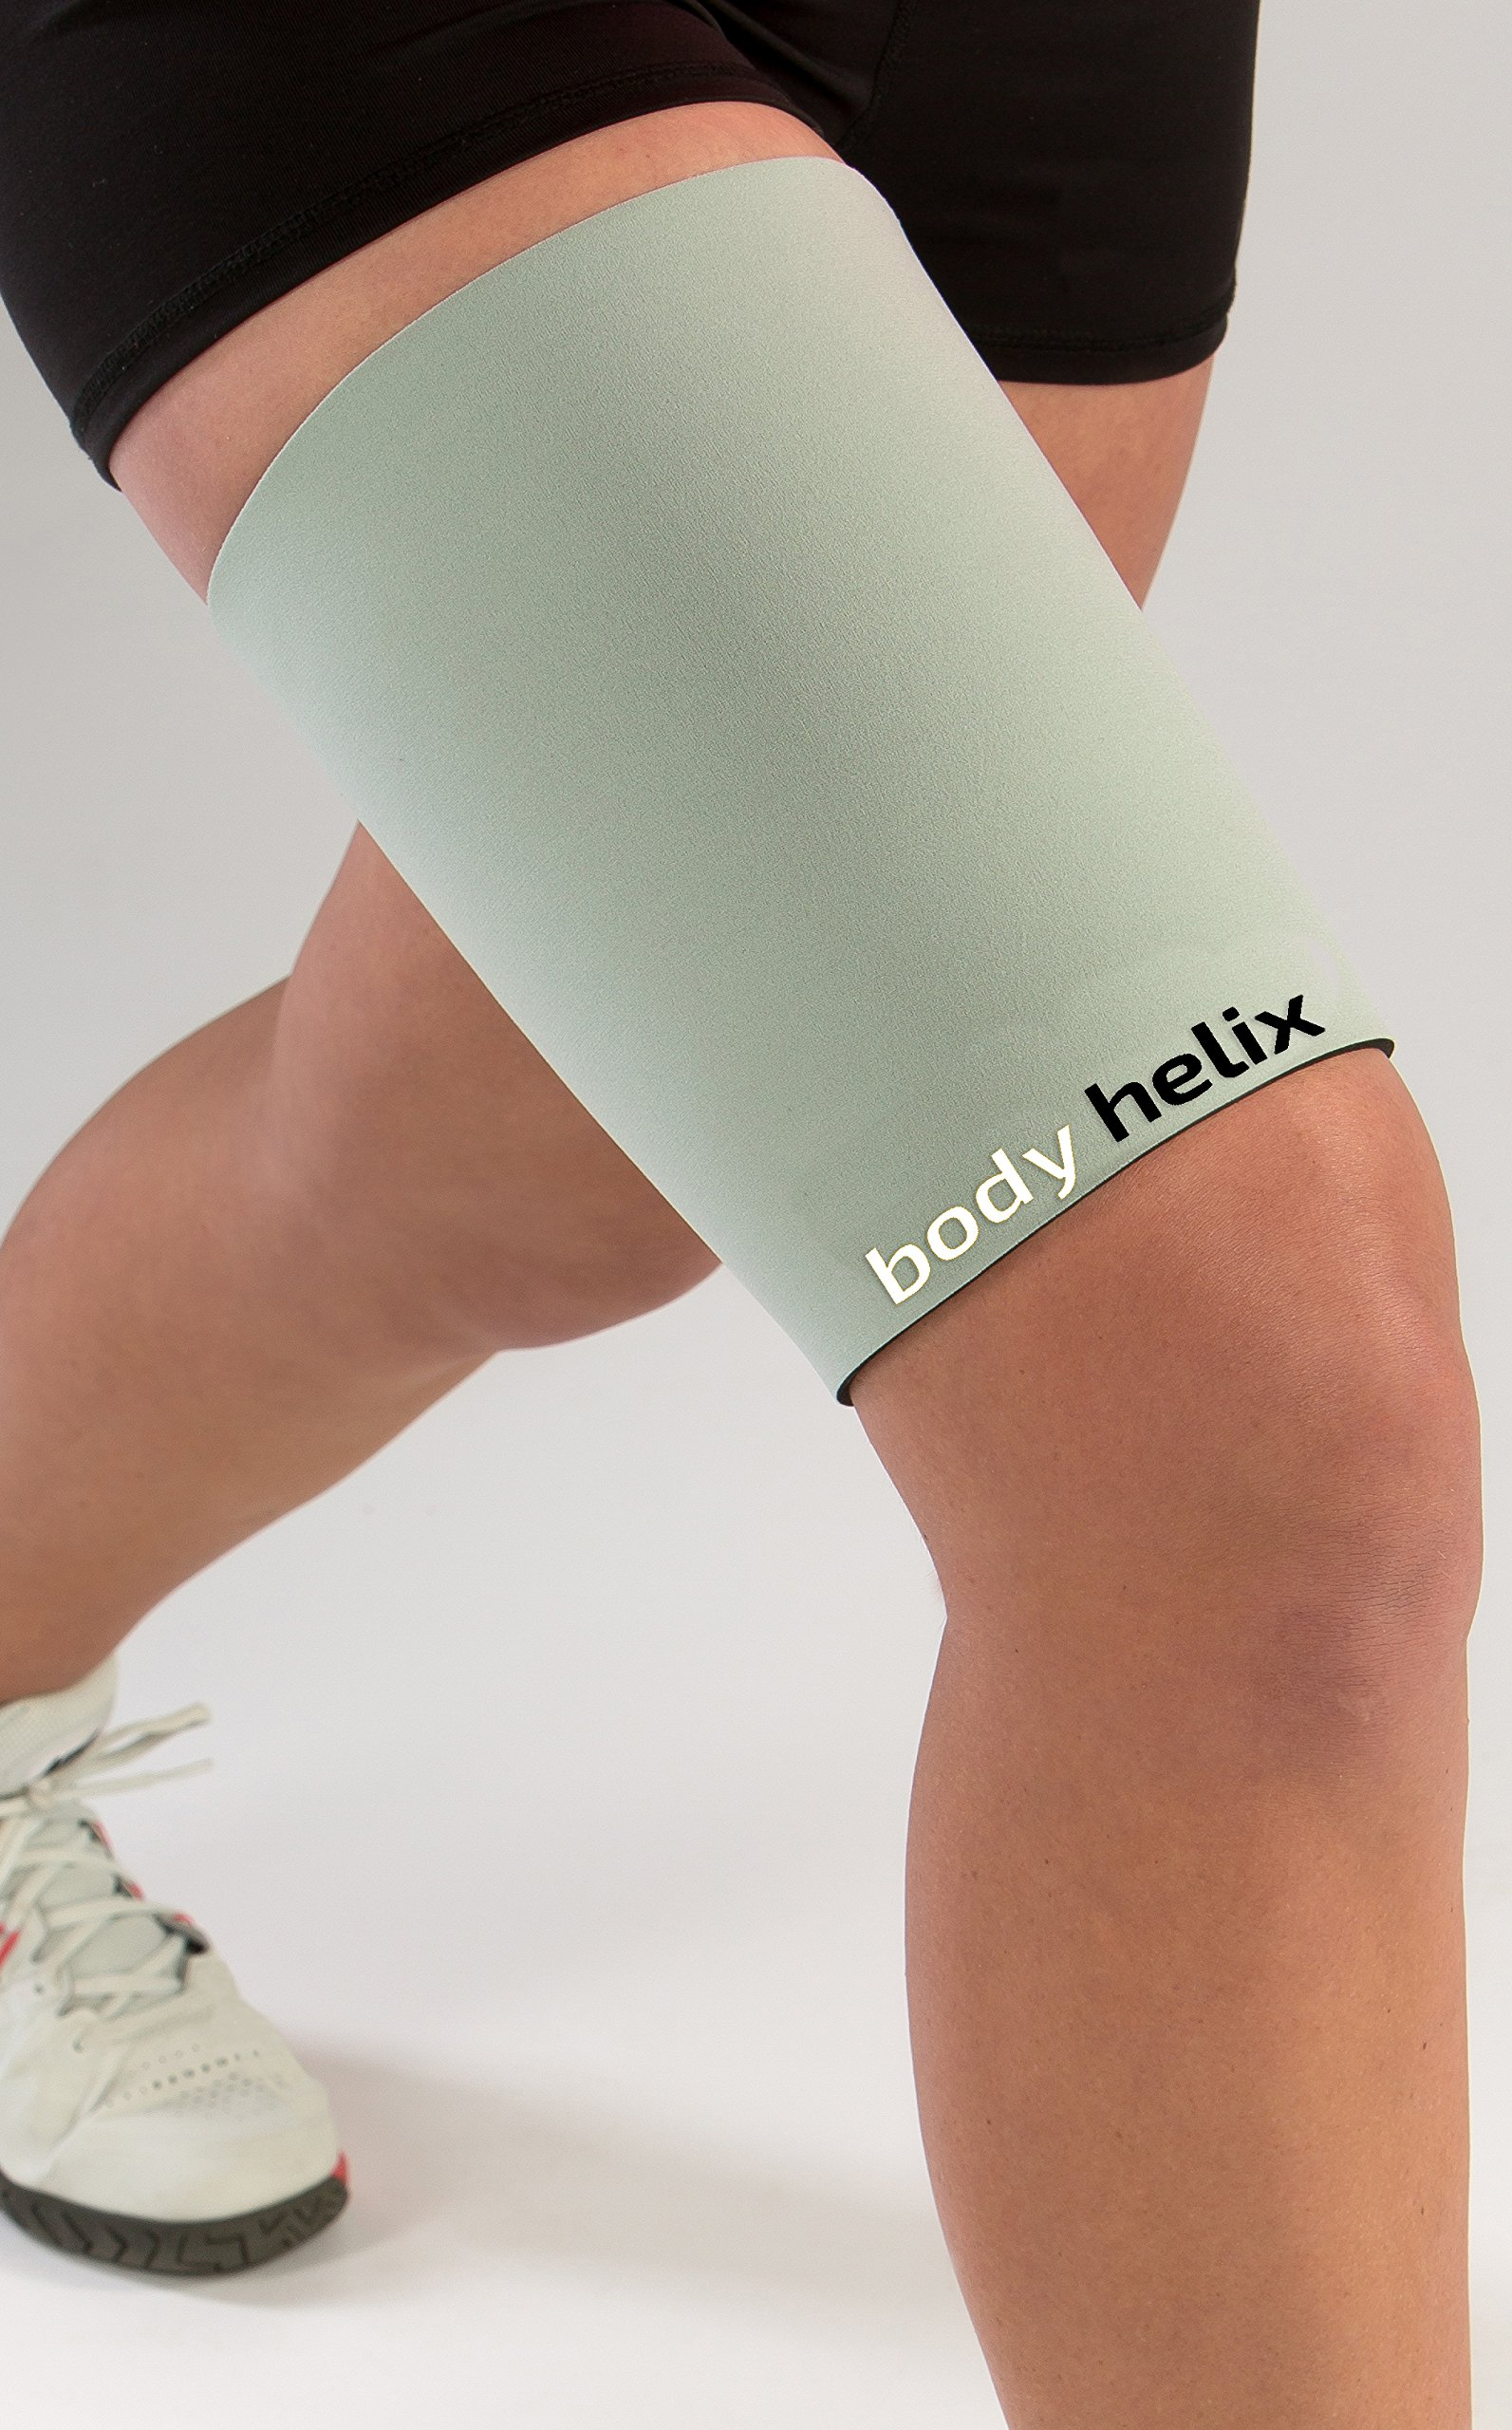 body helix Thigh Compression Sleeve - Full Thigh Helix Support Sleeves Wraps (Silver, Medium) by body helix